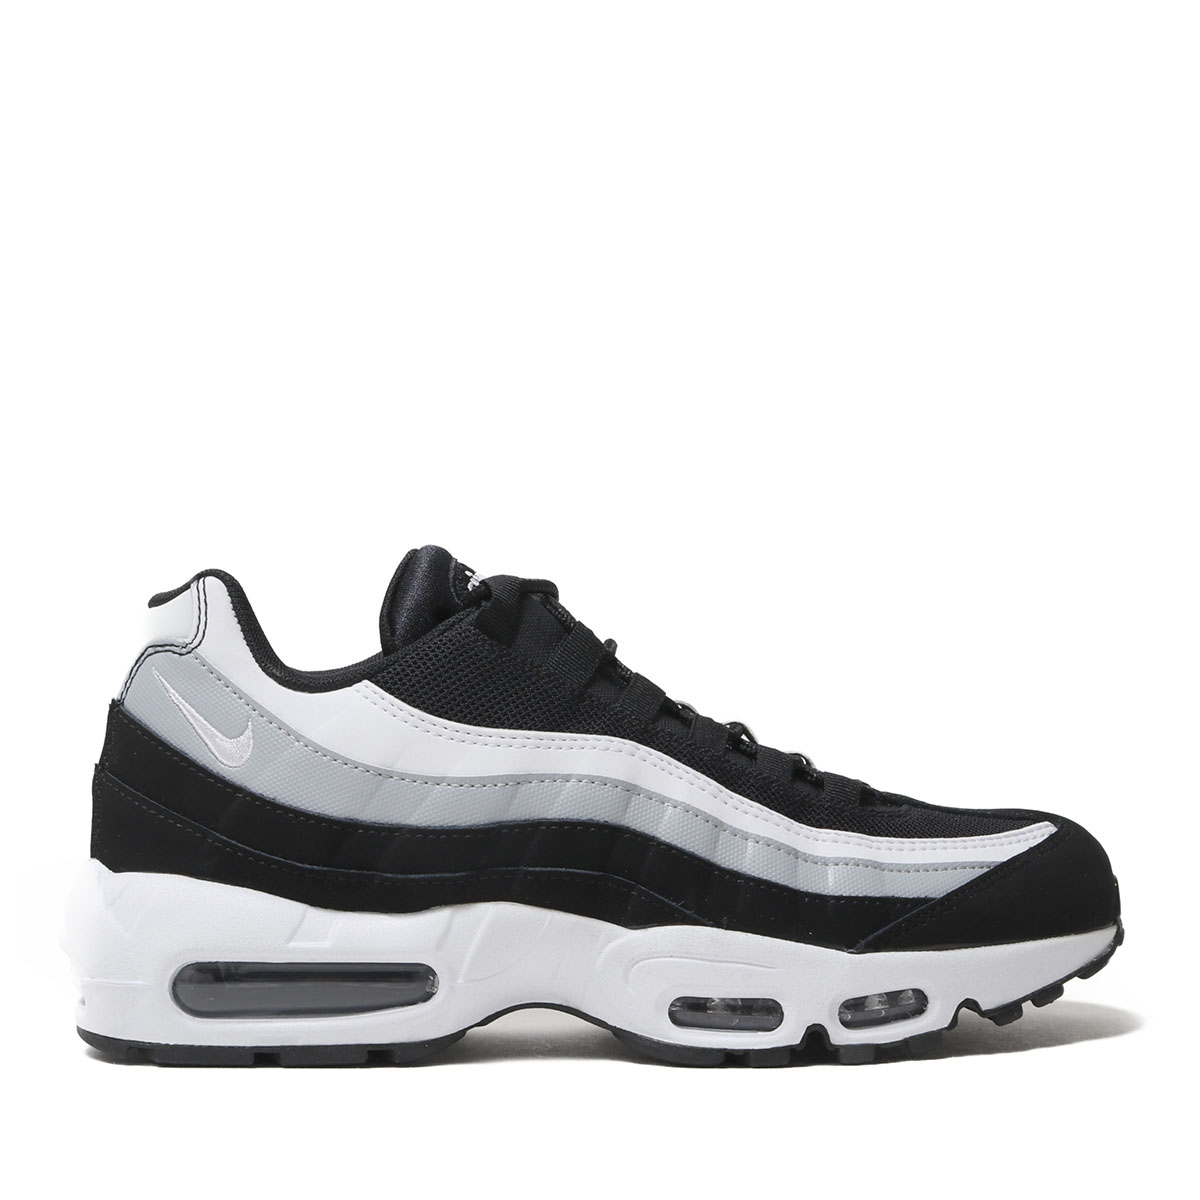 low priced b995c e5cb1 NIKE AIR MAX 95 ESSENTIAL (BLACK WHITE-WOLF GREY) (Kie Ney ...